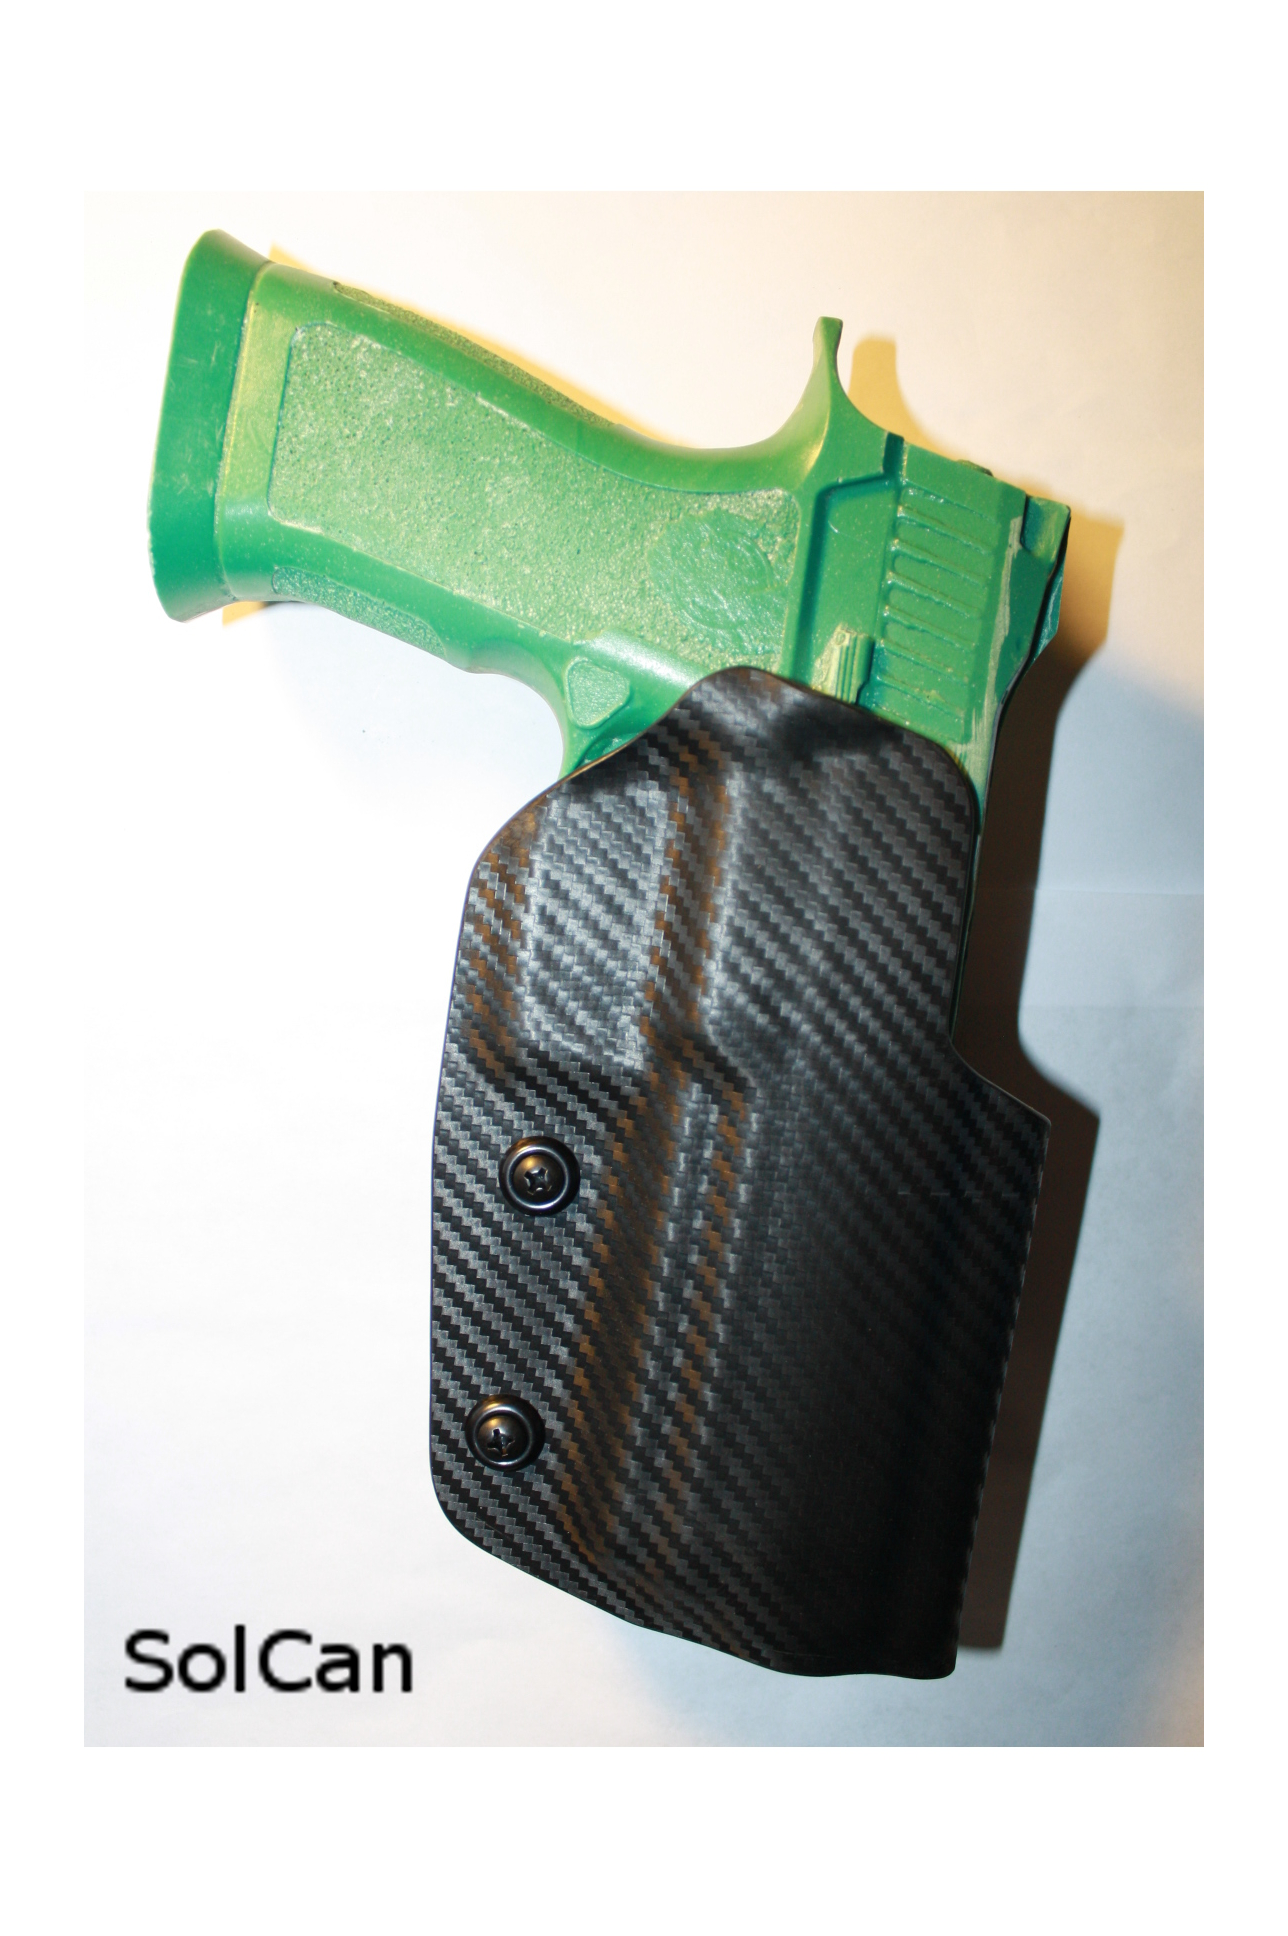 Solely Canadian - Competition Holsters